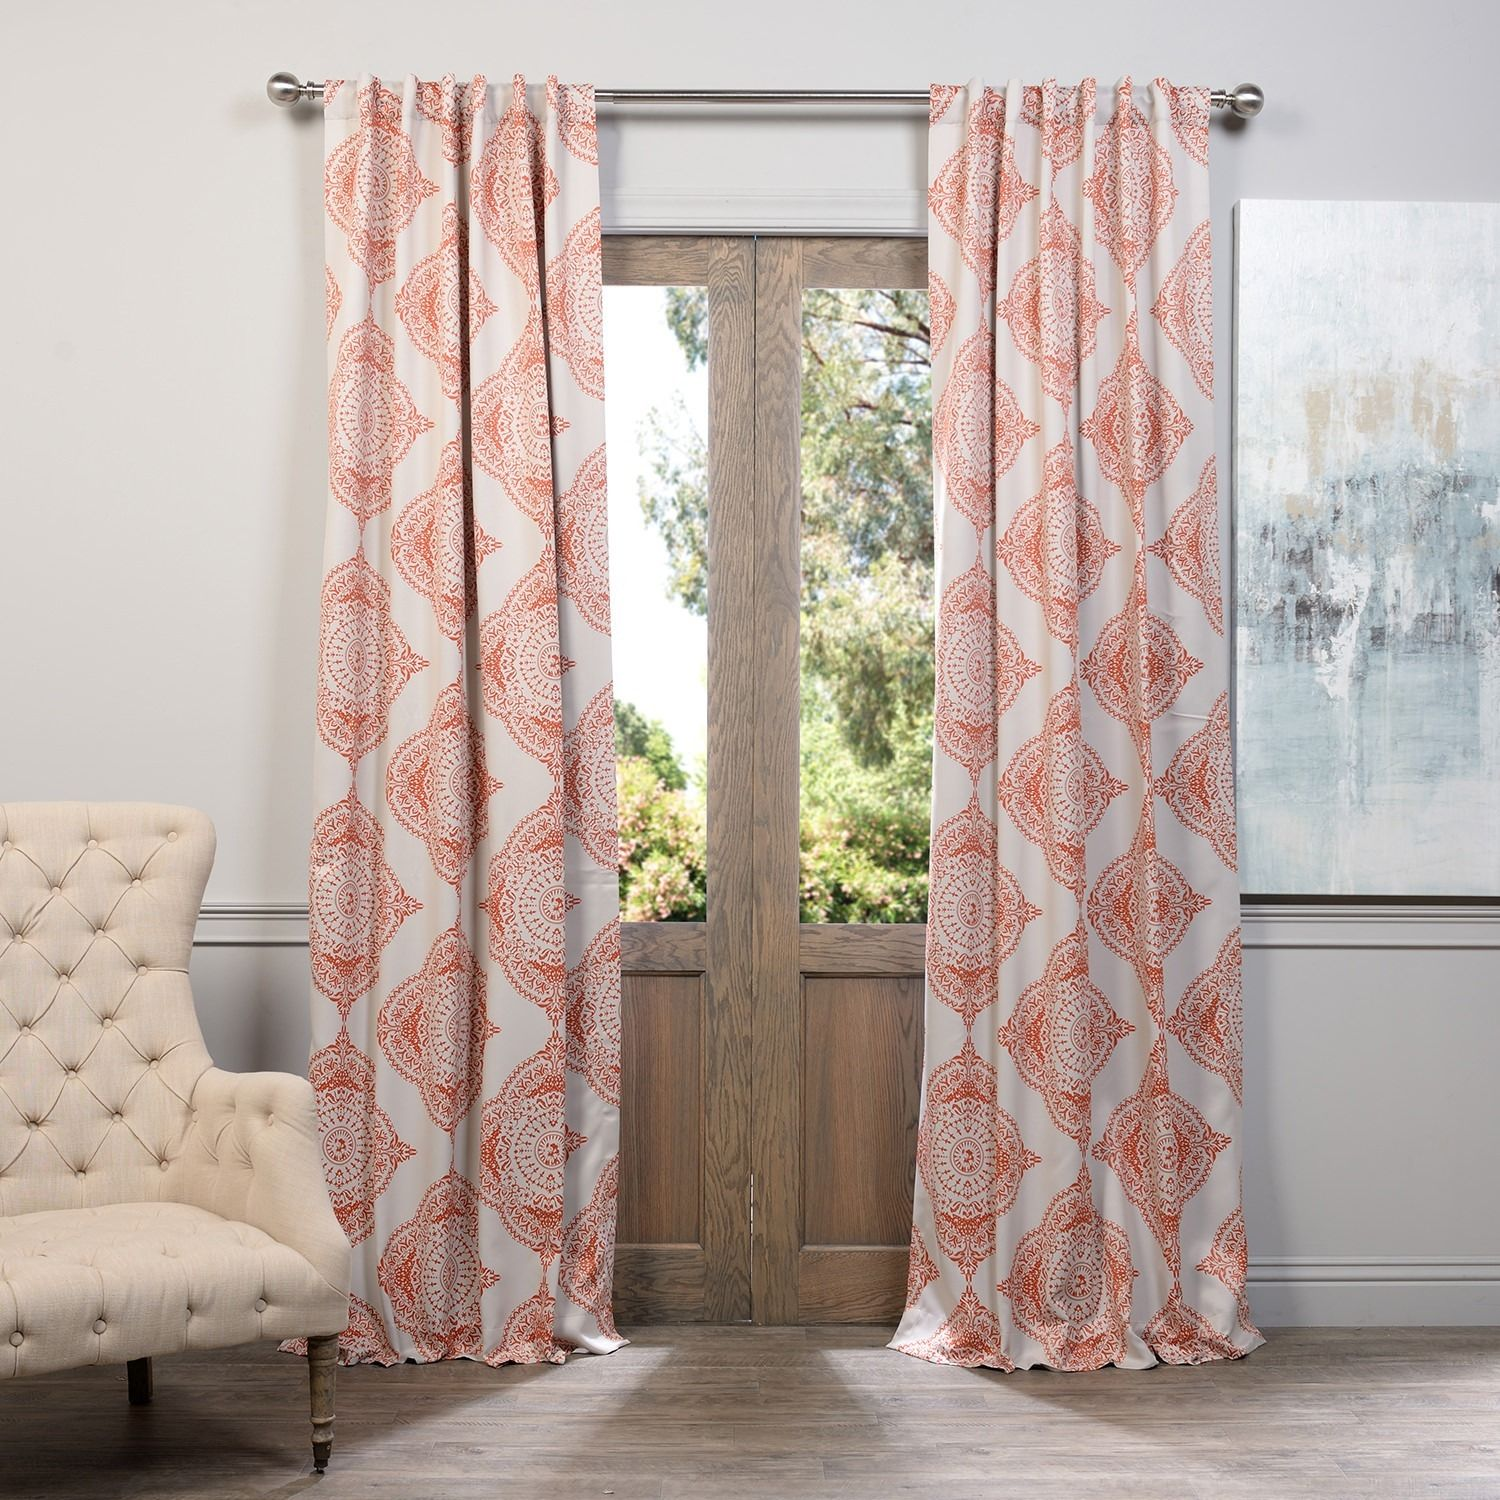 This Henna Curtain Panel Features A Blackout Design With A